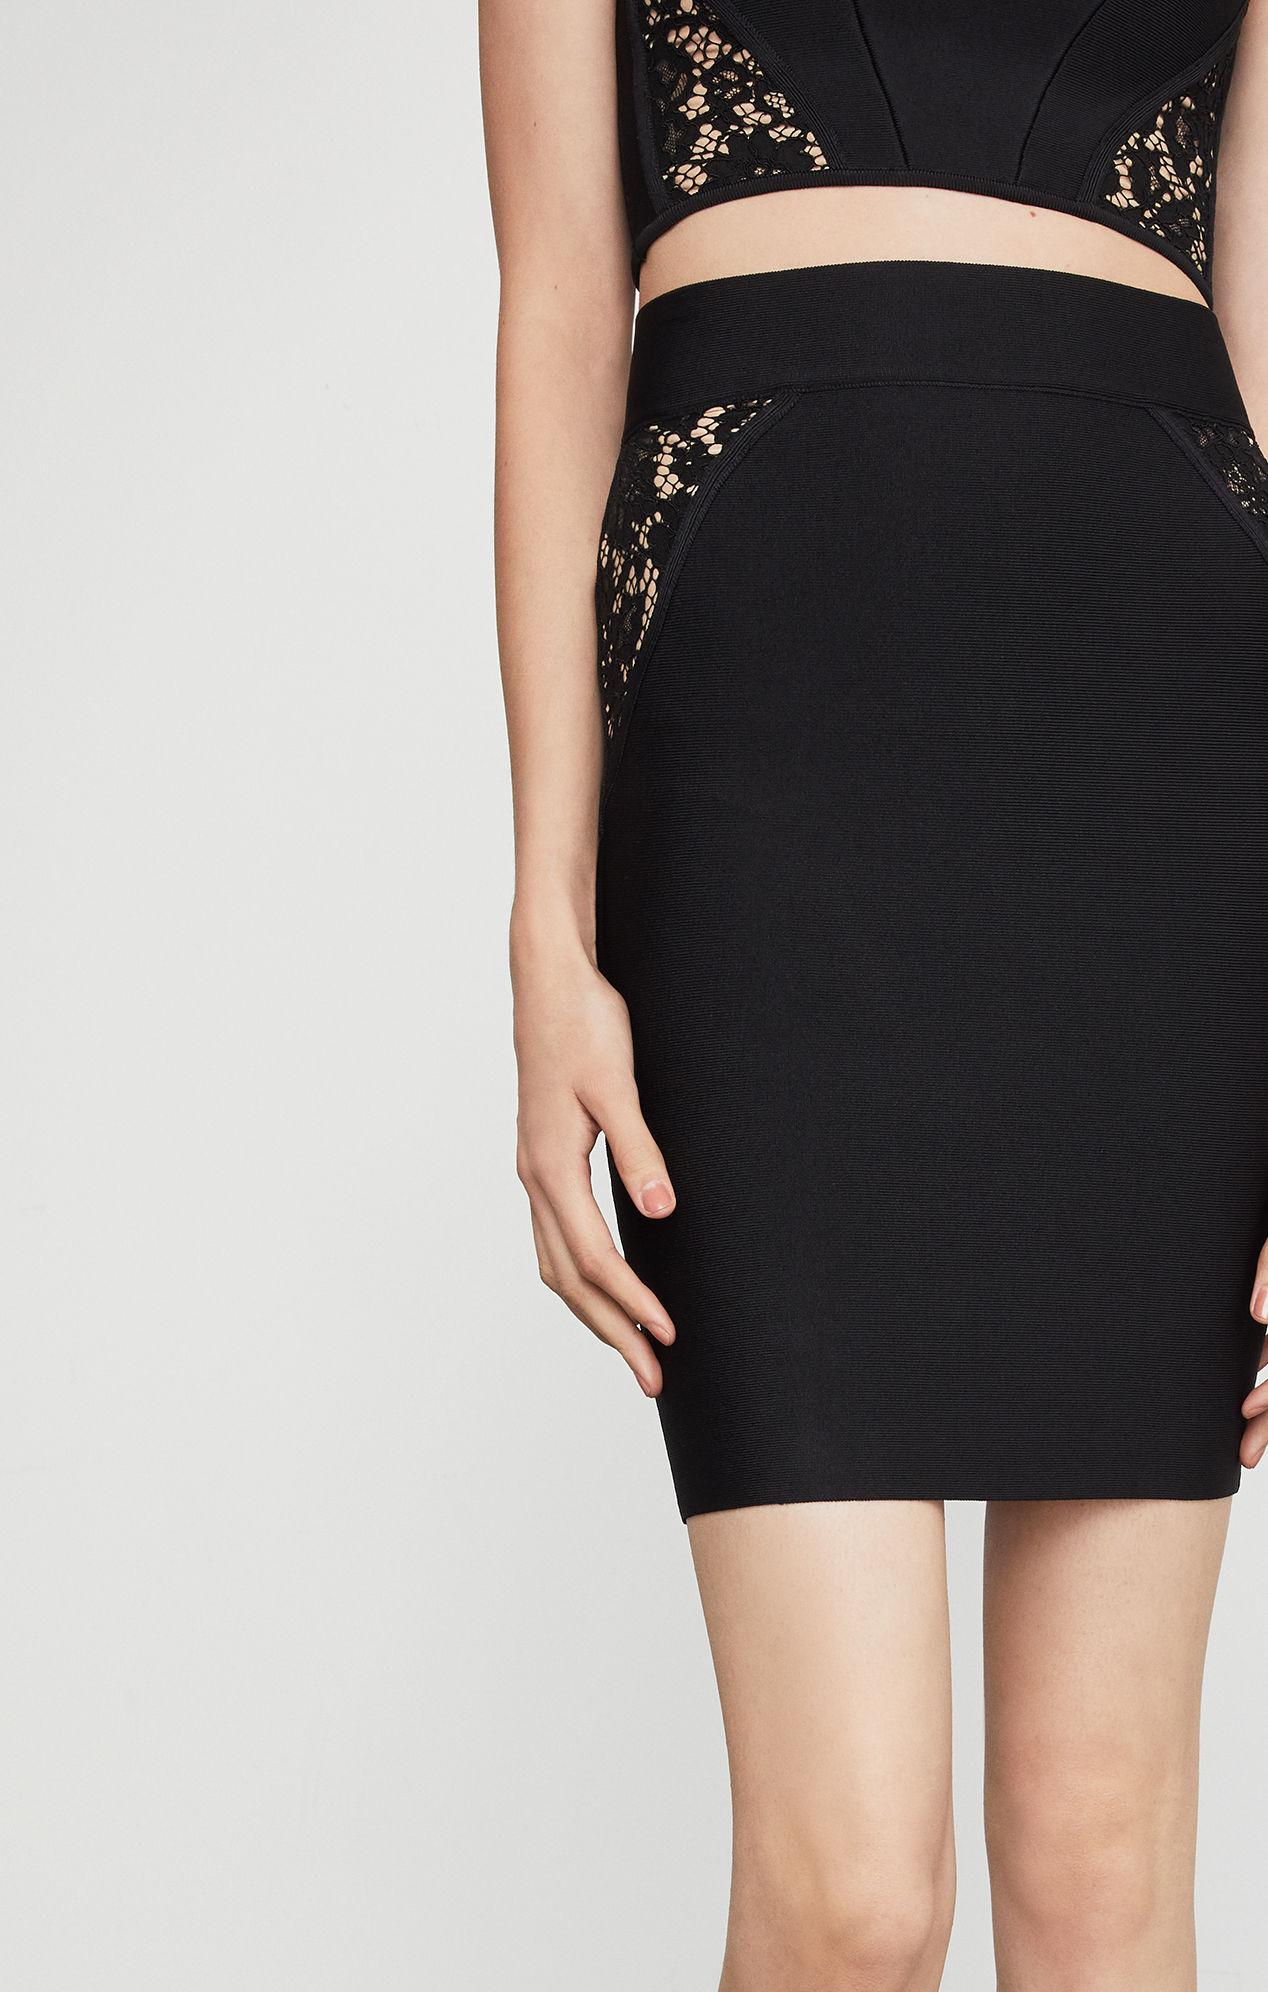 32866a65a0 BCBGMAXAZRIA - Black Bcbg Lace Inset Pencil Skirt - Lyst. View fullscreen